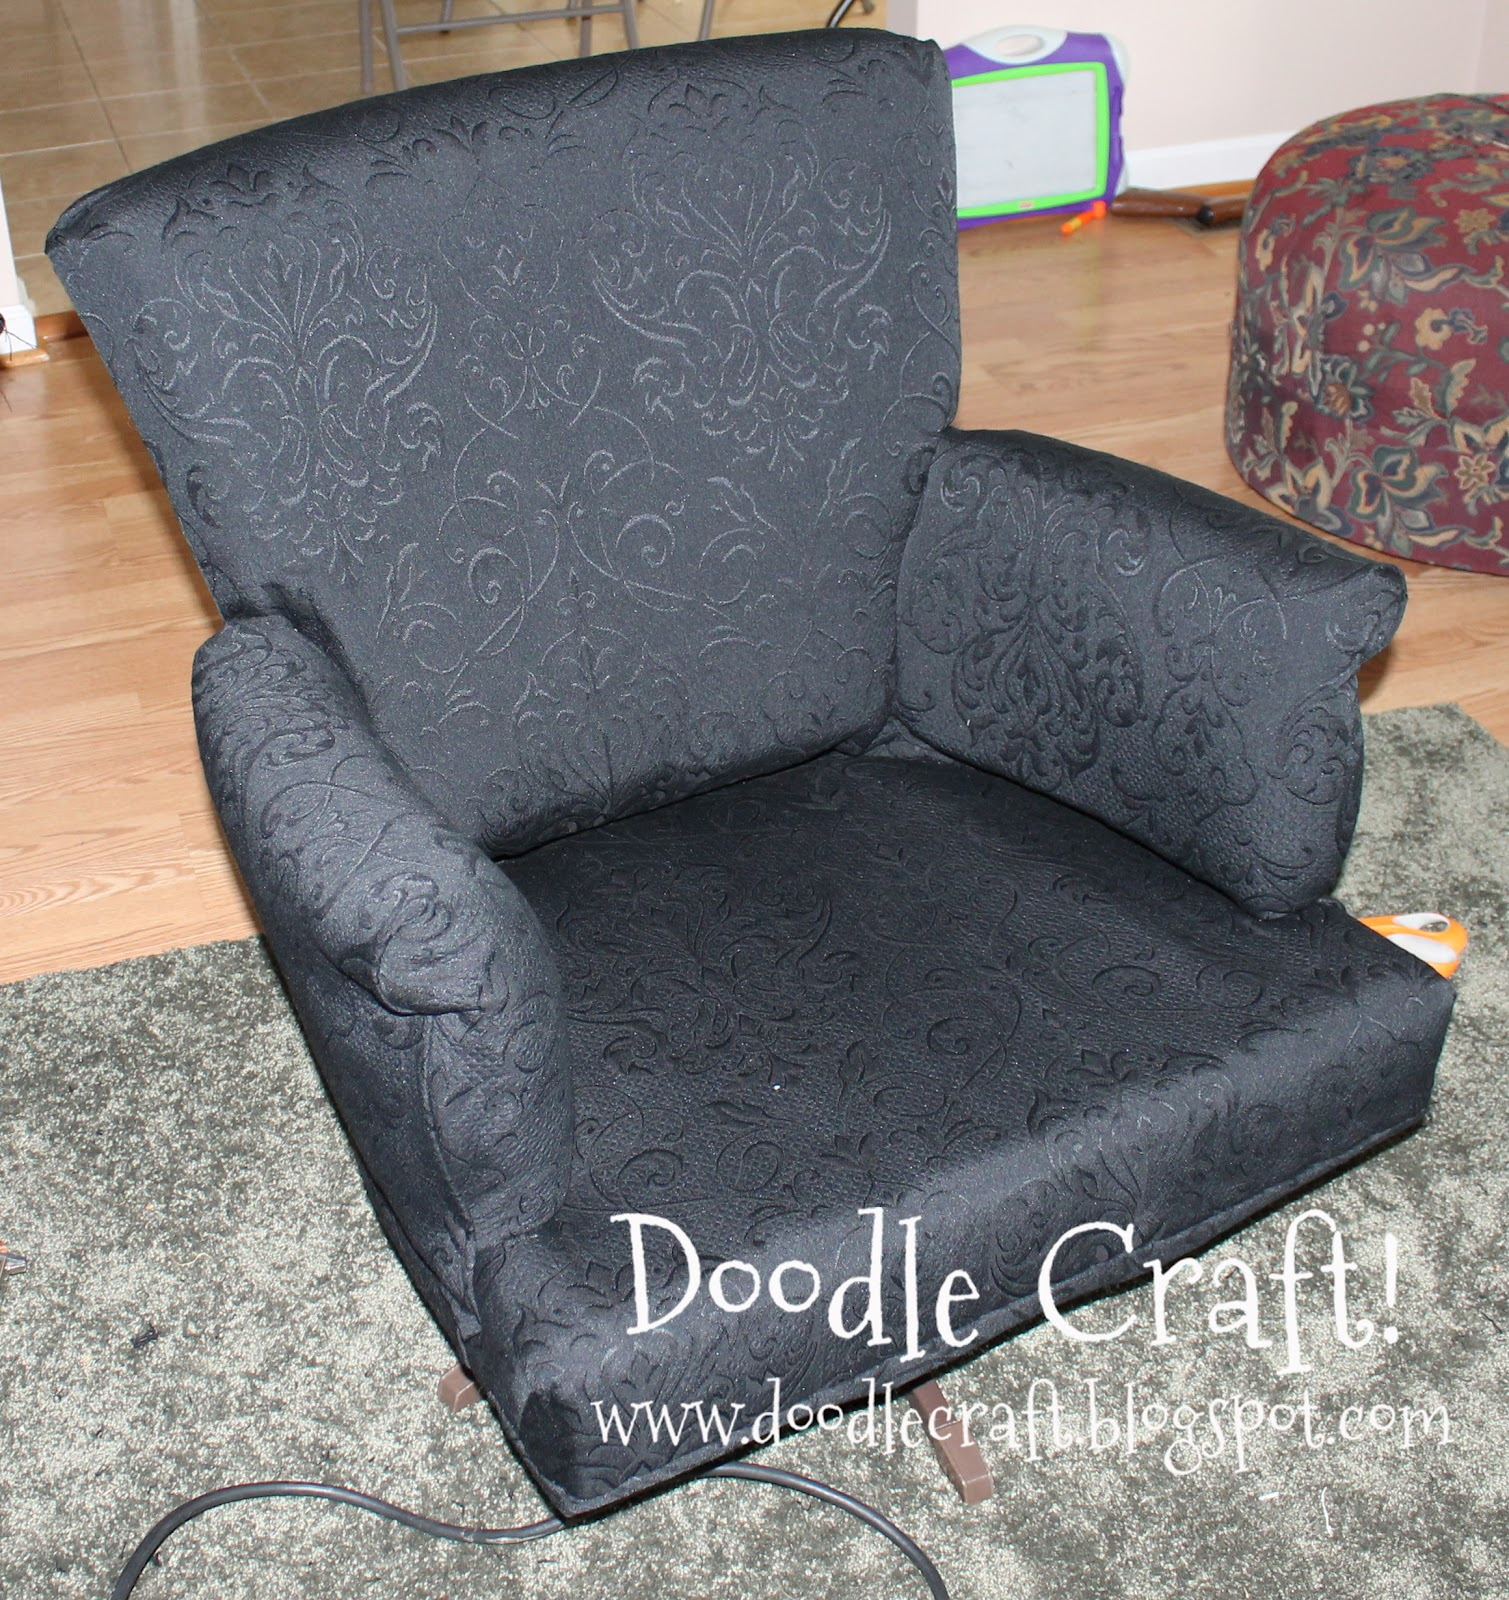 Doodlecraft: The UGLY Chair!